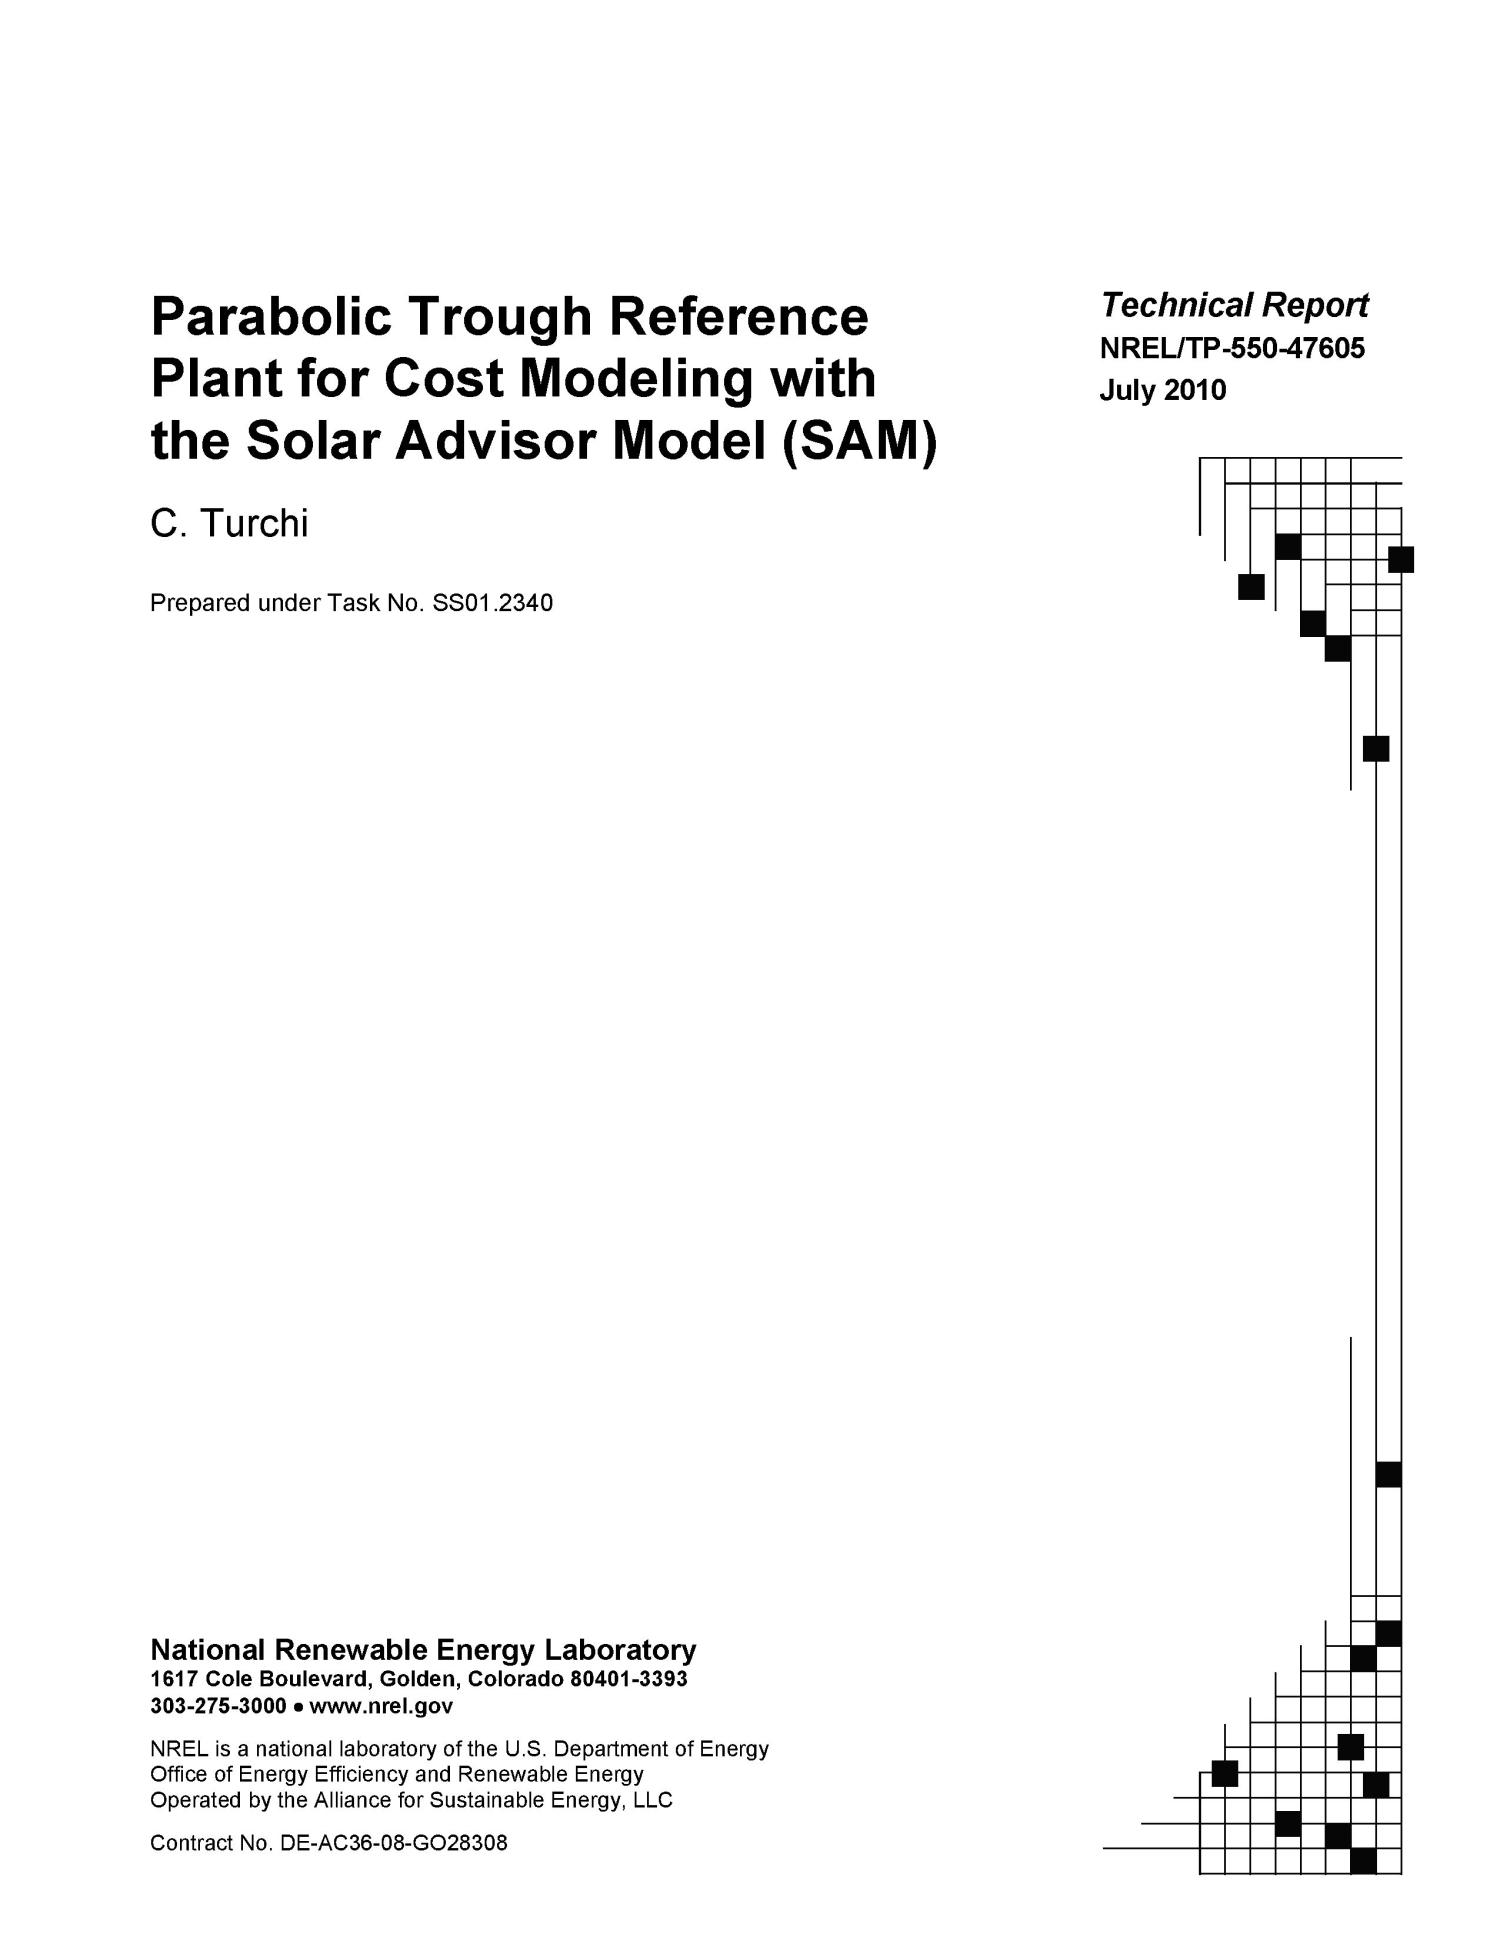 Parabolic Trough Reference Plant for Cost Modeling with the Solar Advisor Model (SAM)                                                                                                      [Sequence #]: 2 of 112